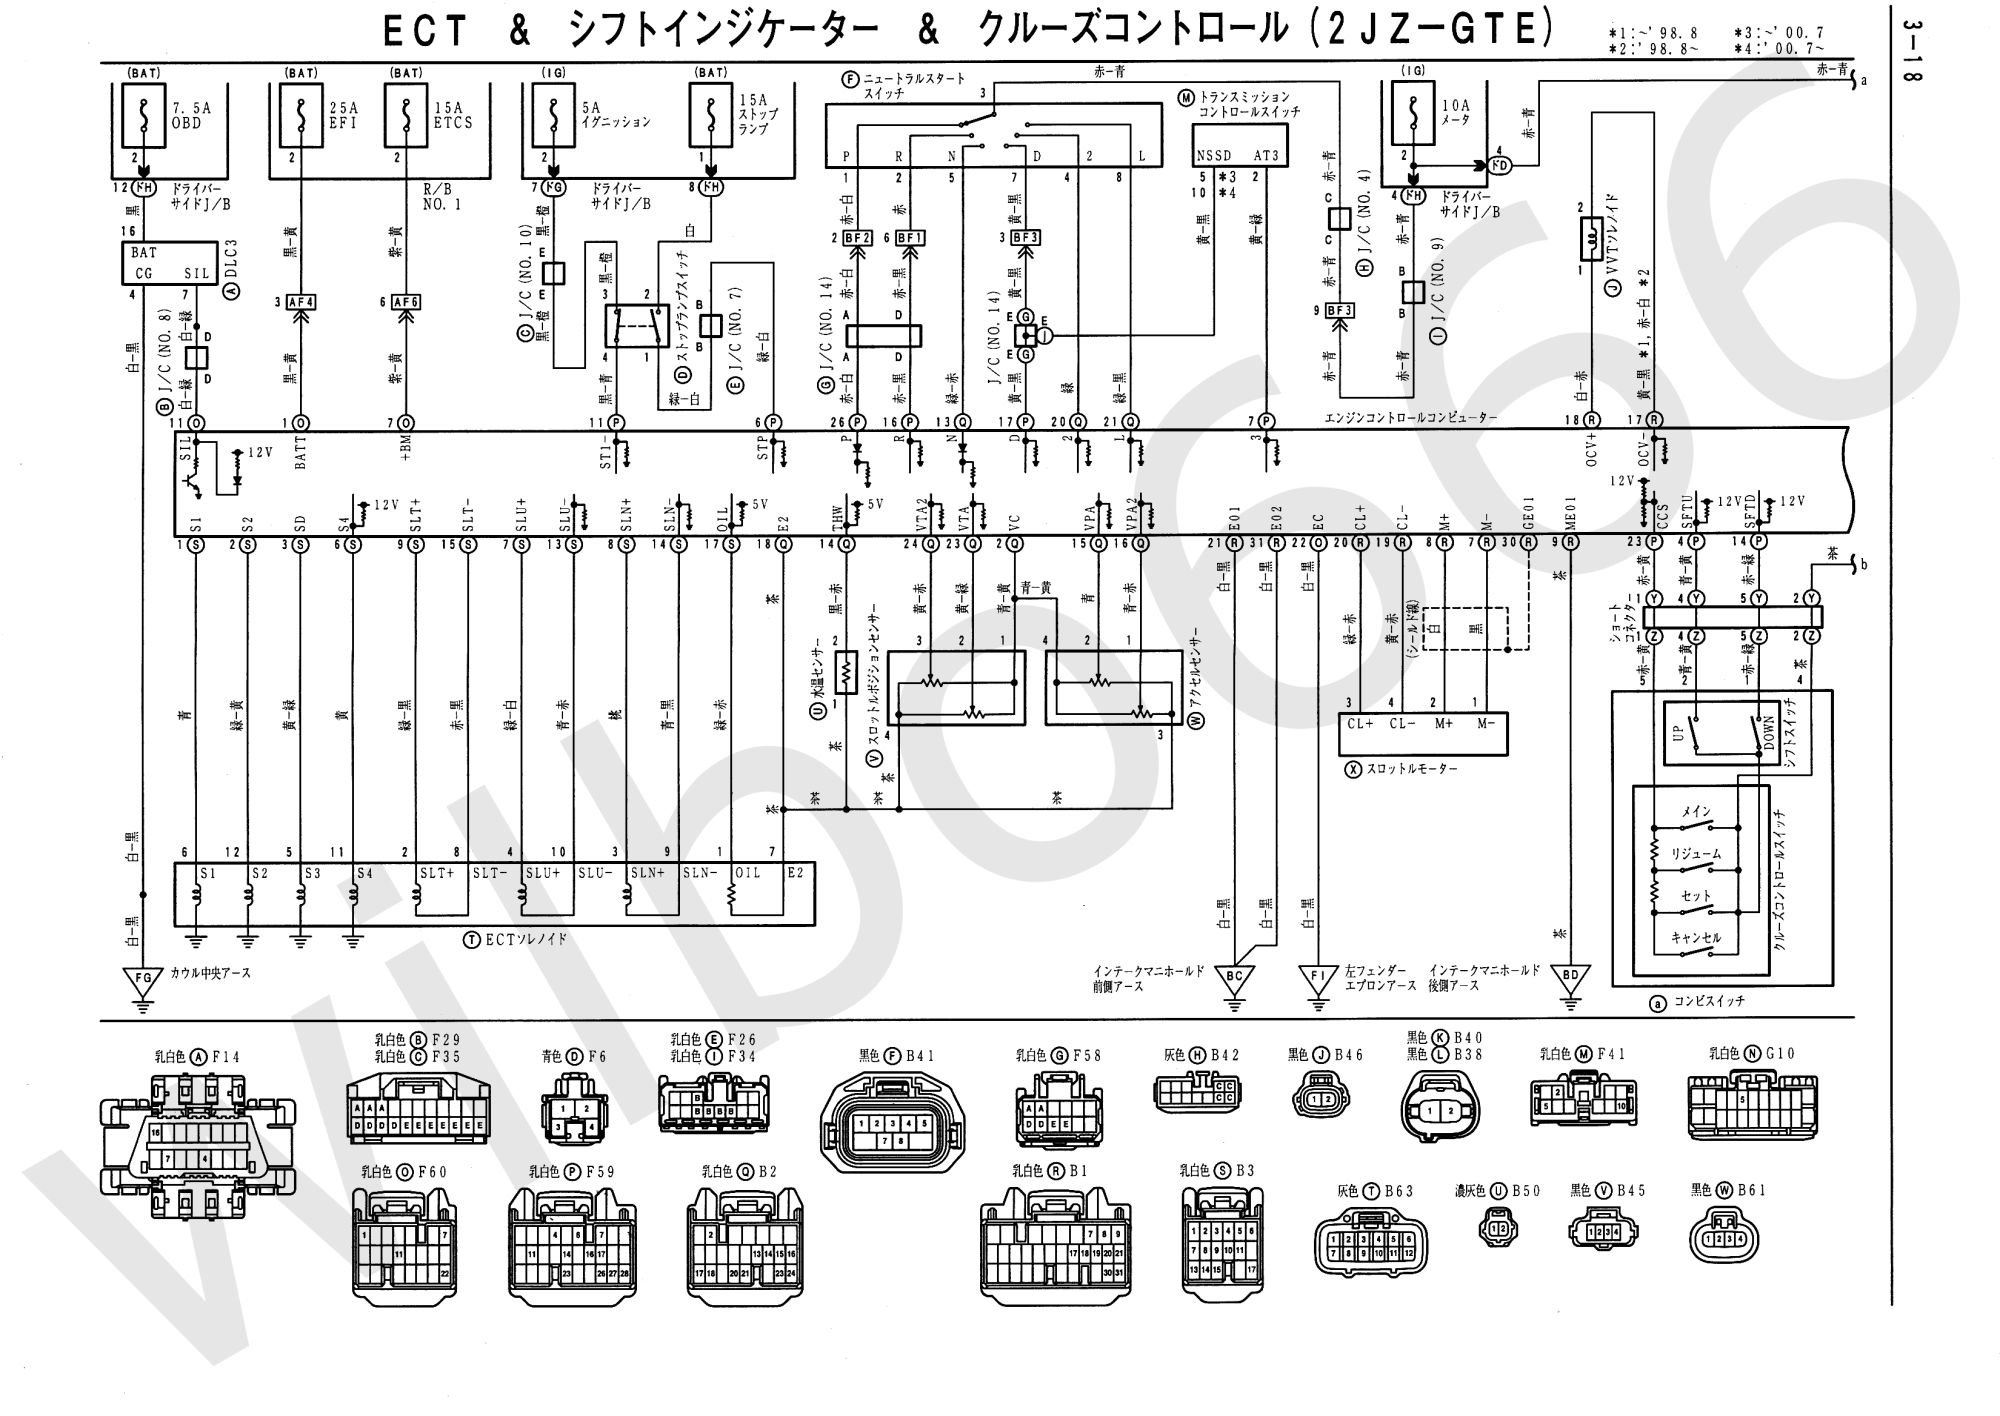 hight resolution of wilbo666 2jz gte vvti jzs161 aristo engine wiring rh wilbo666 pbworks com 2jz gte engine diagram